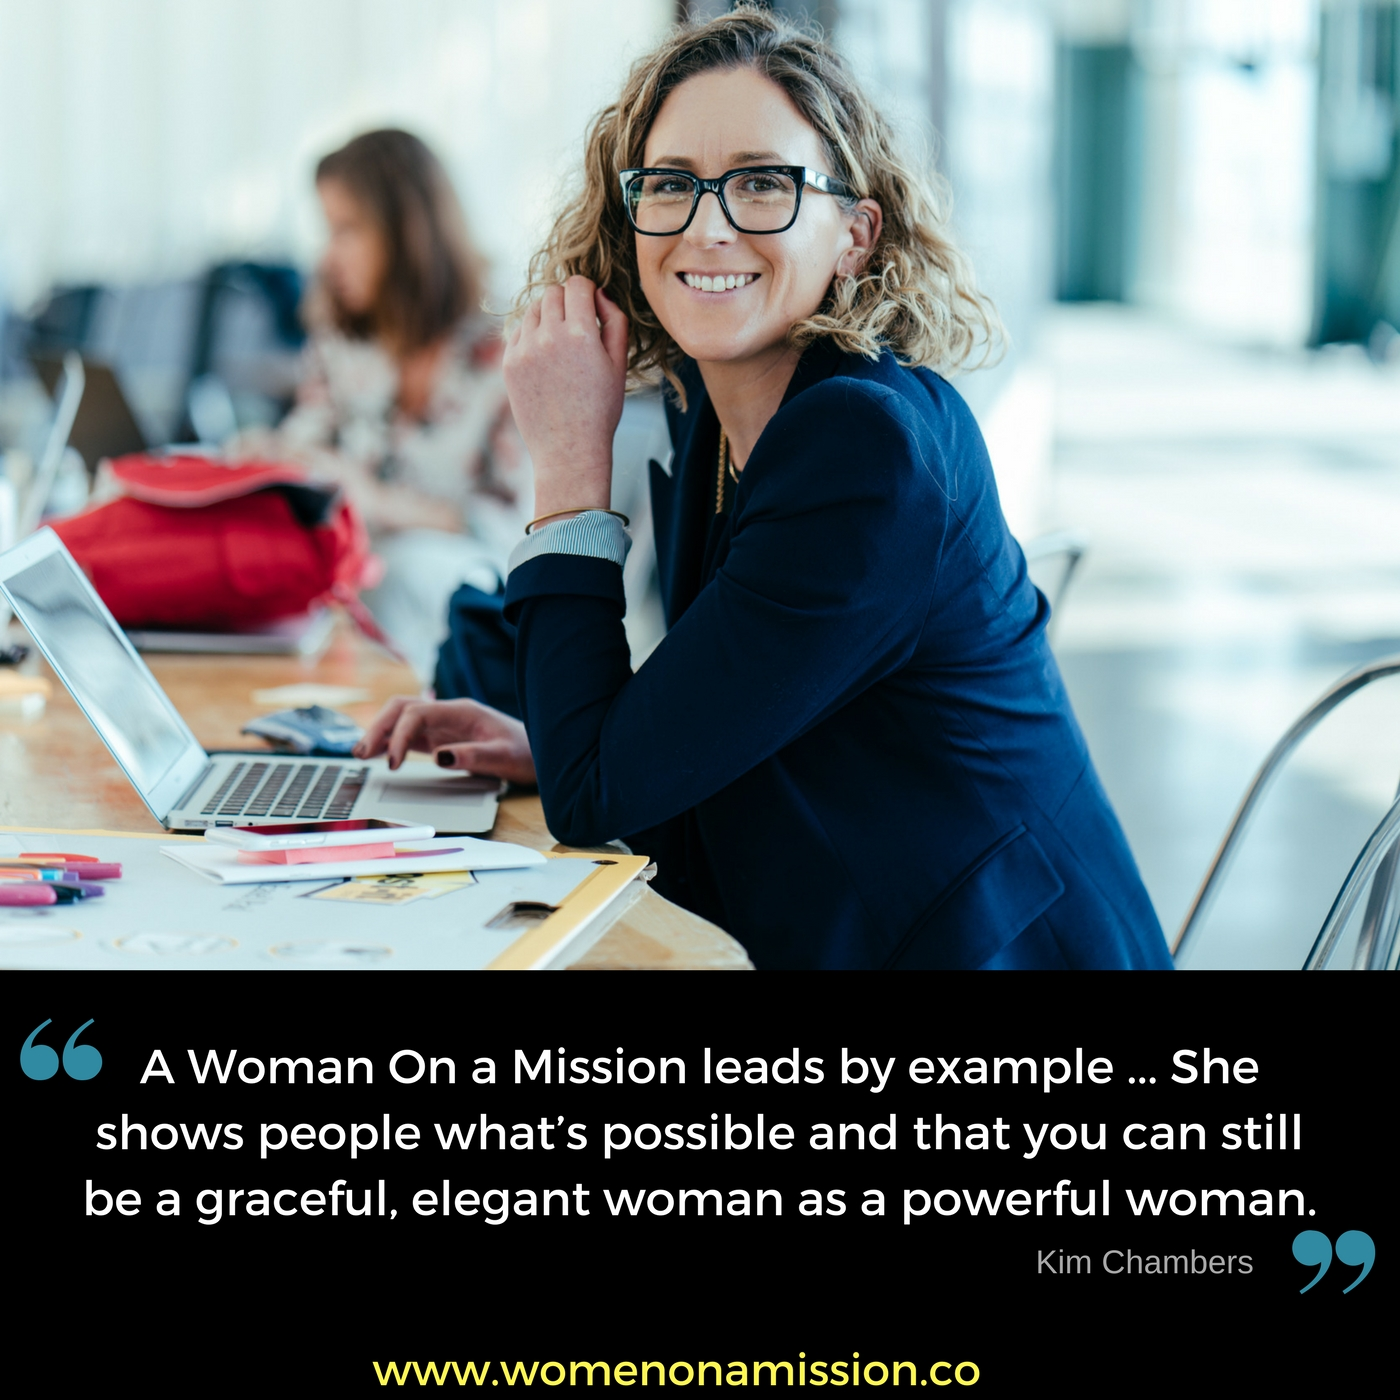 Kim_Chambers_KimSwims_Best_Podcast_For_Women_On_A_Mission_Erin_Brennan_Brand_Yourself